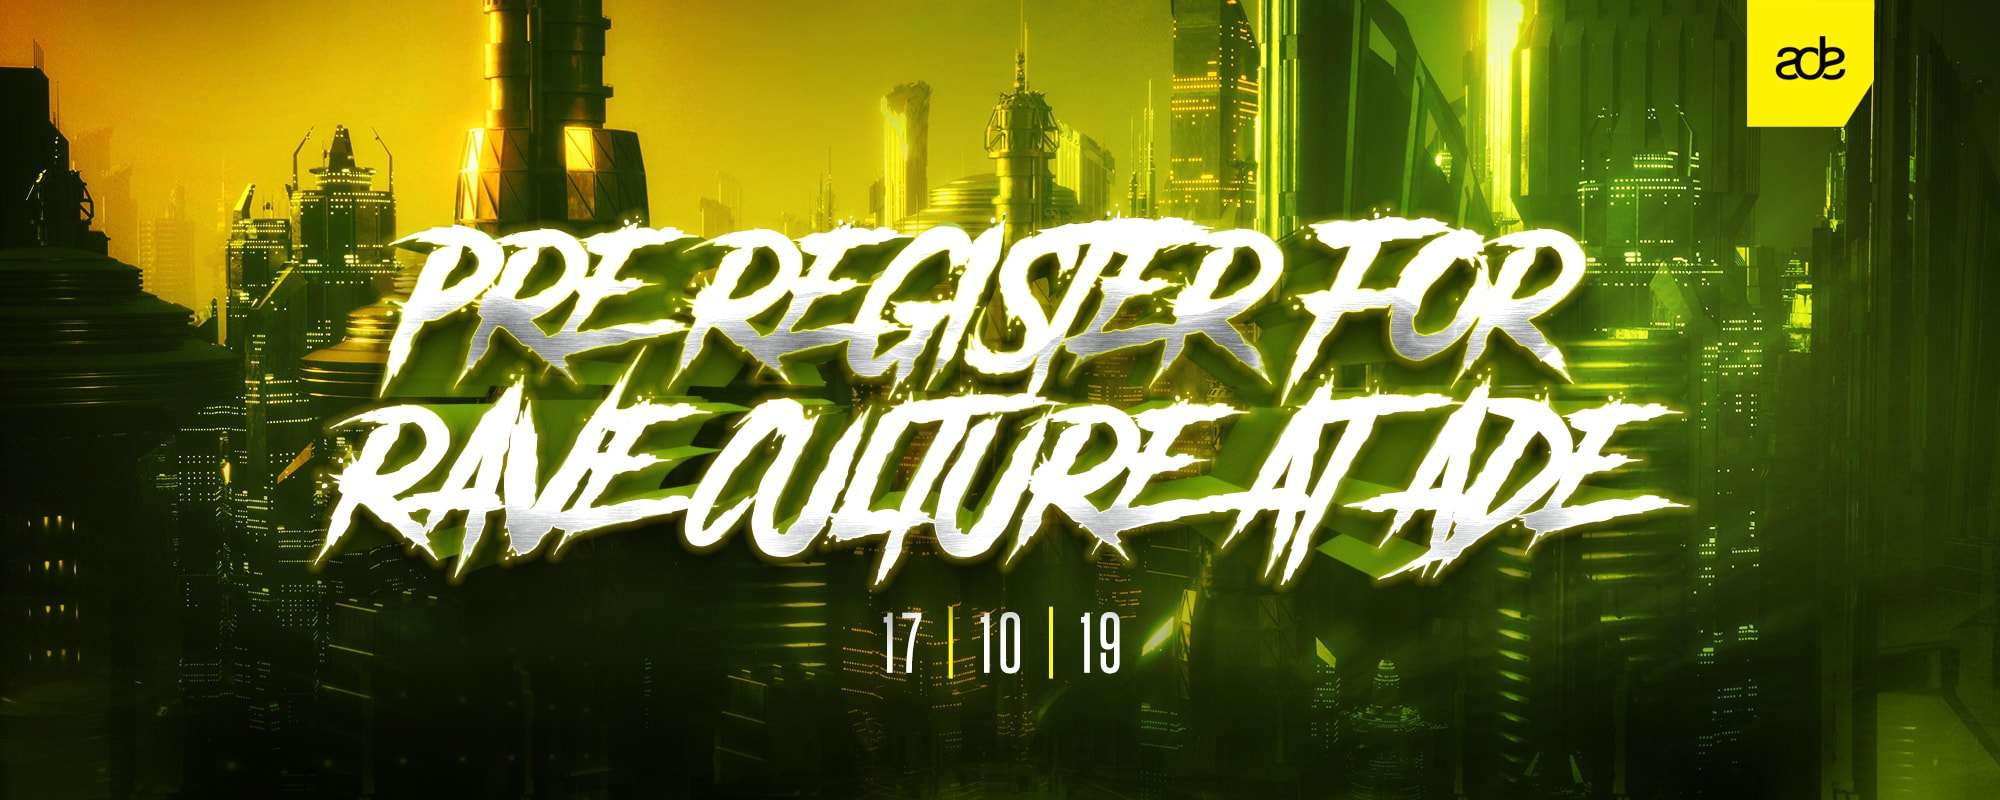 Pre-Register for Rave Culture at ADE 2019